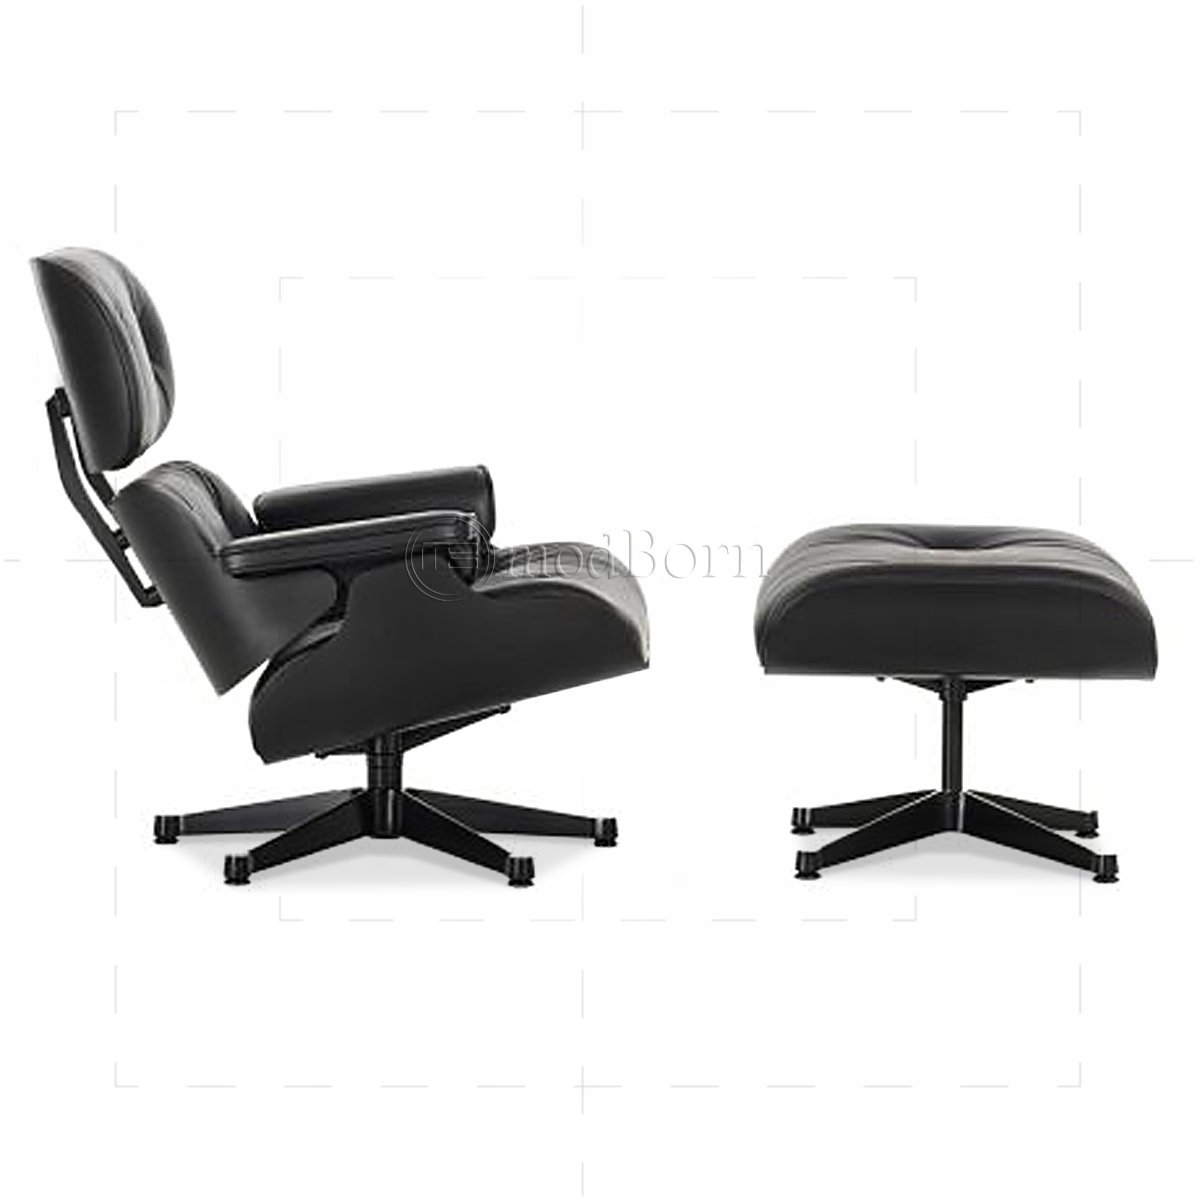 Eames style lounge chair and ottoman black leather black for Eames replica deutschland